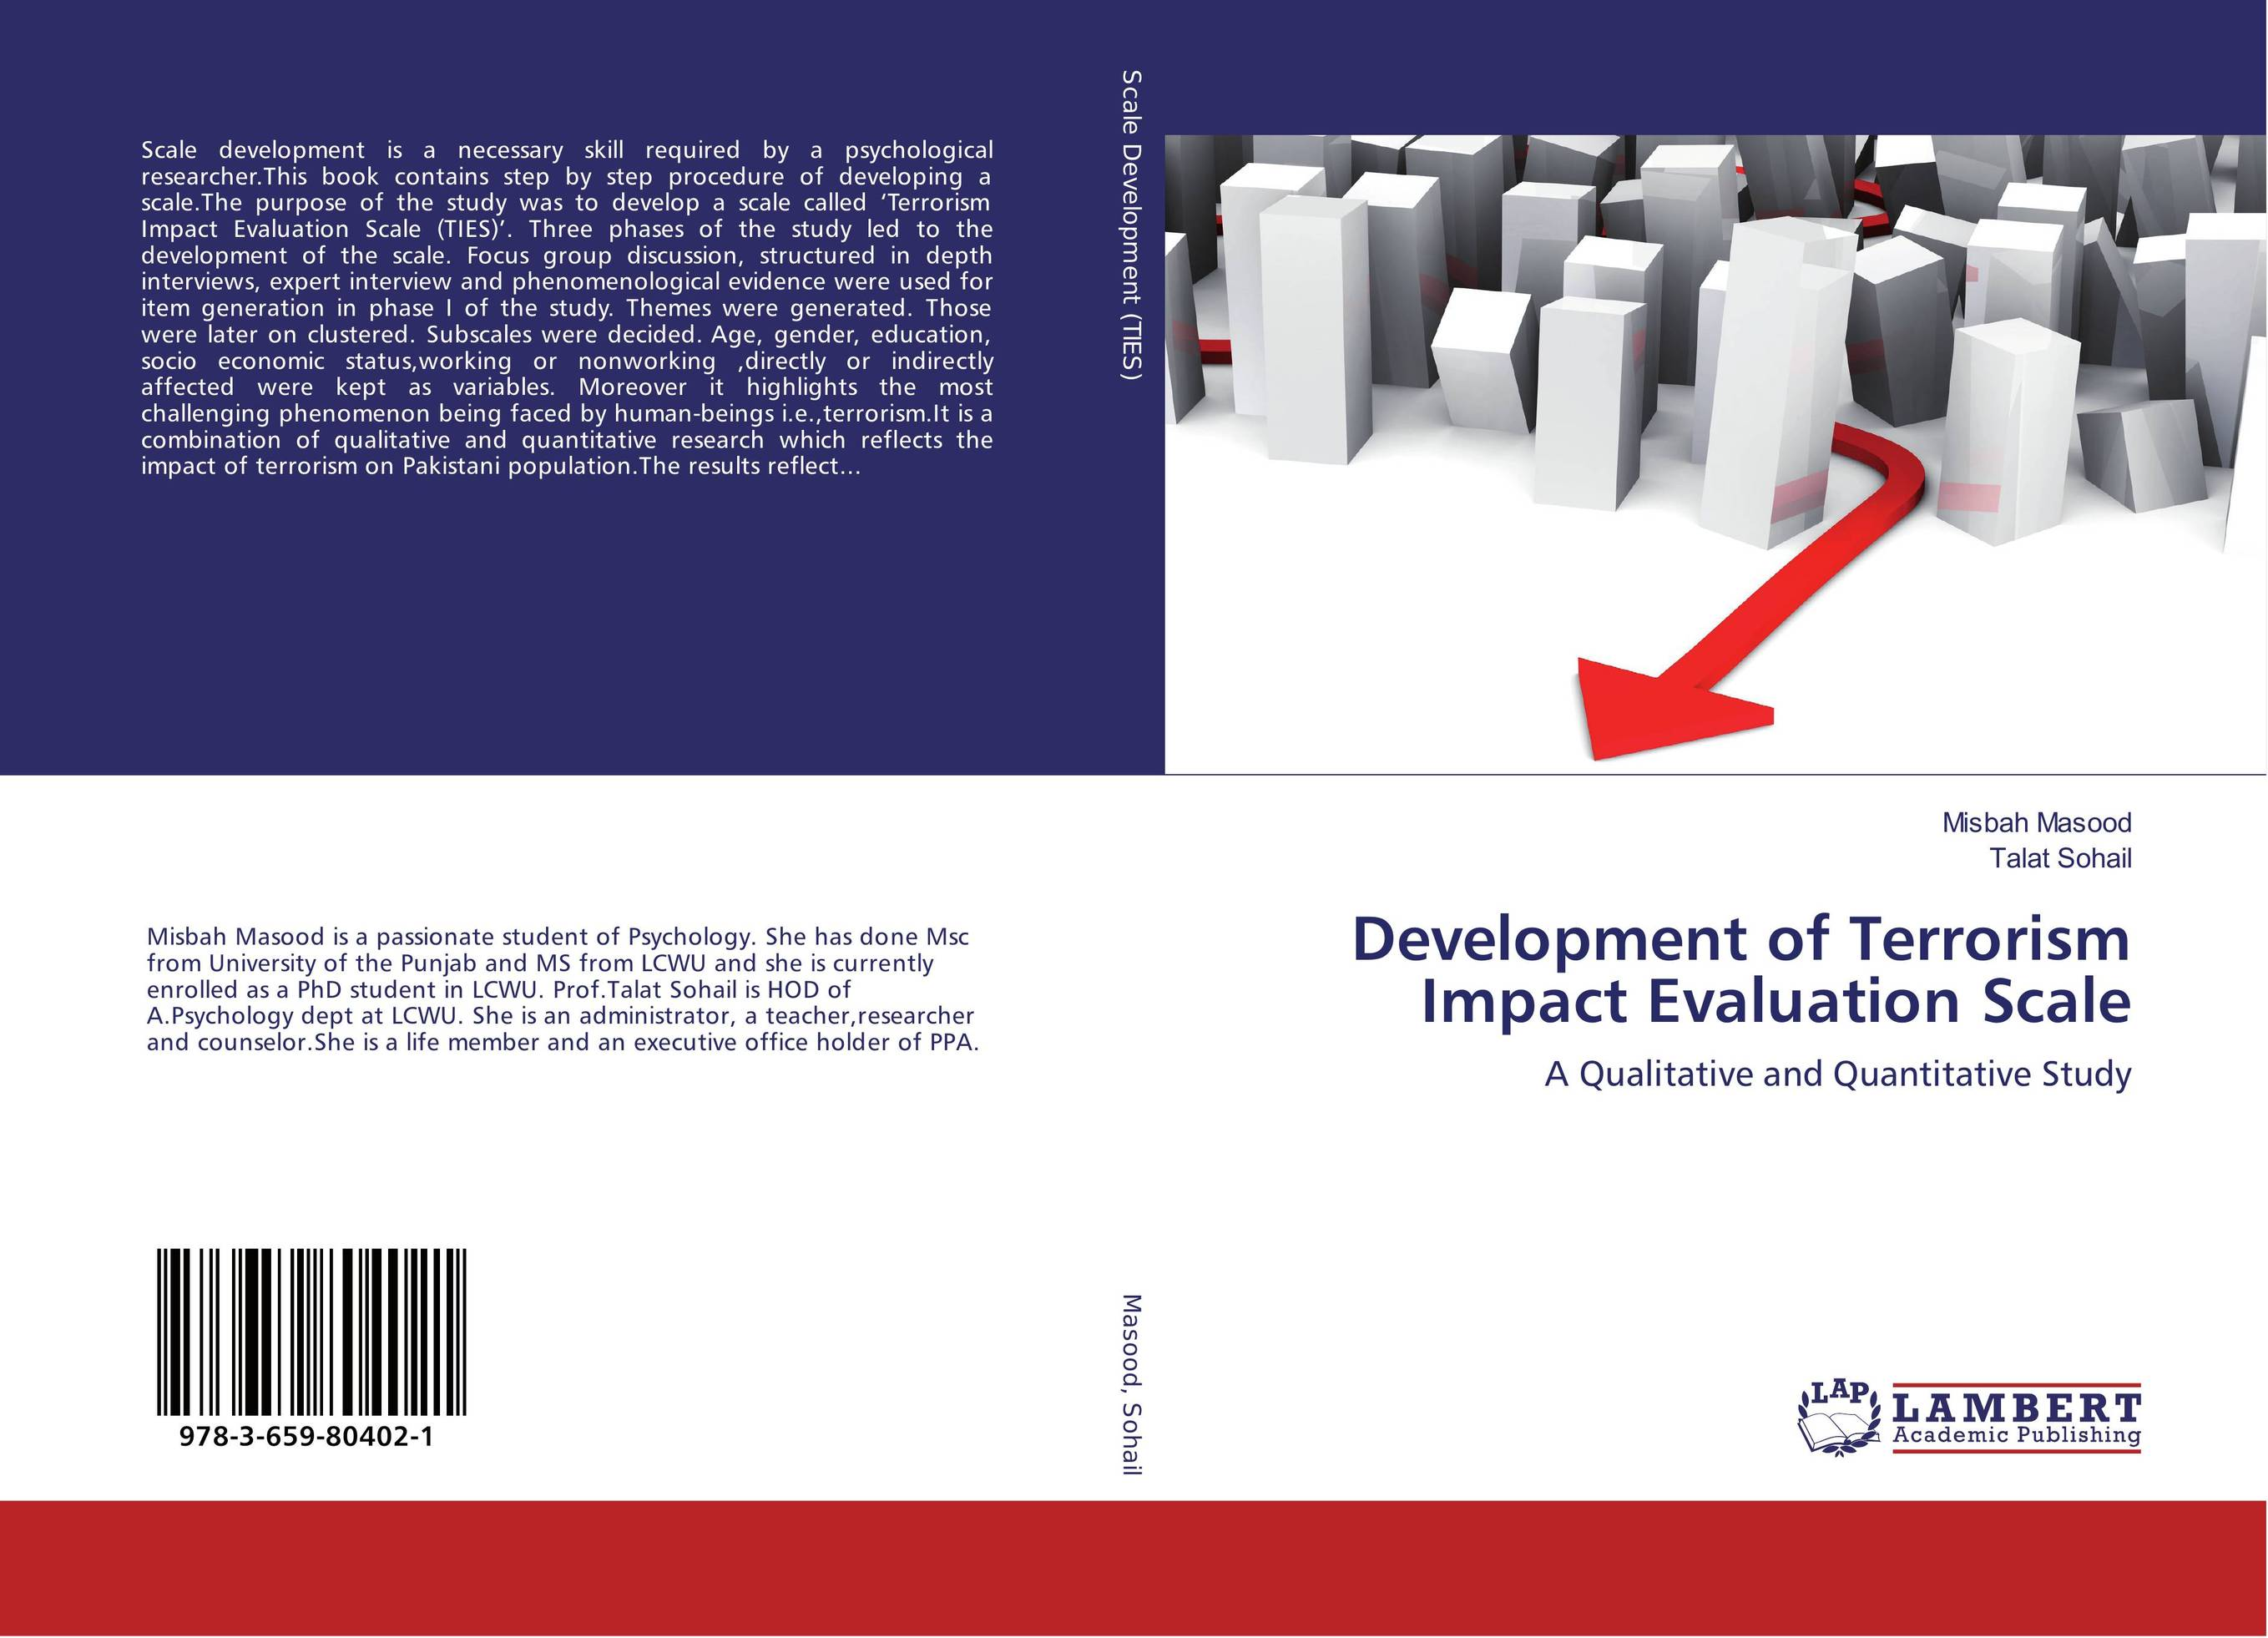 Development of Terrorism Impact Evaluation Scale evaluation of the impact of a mega sporting event